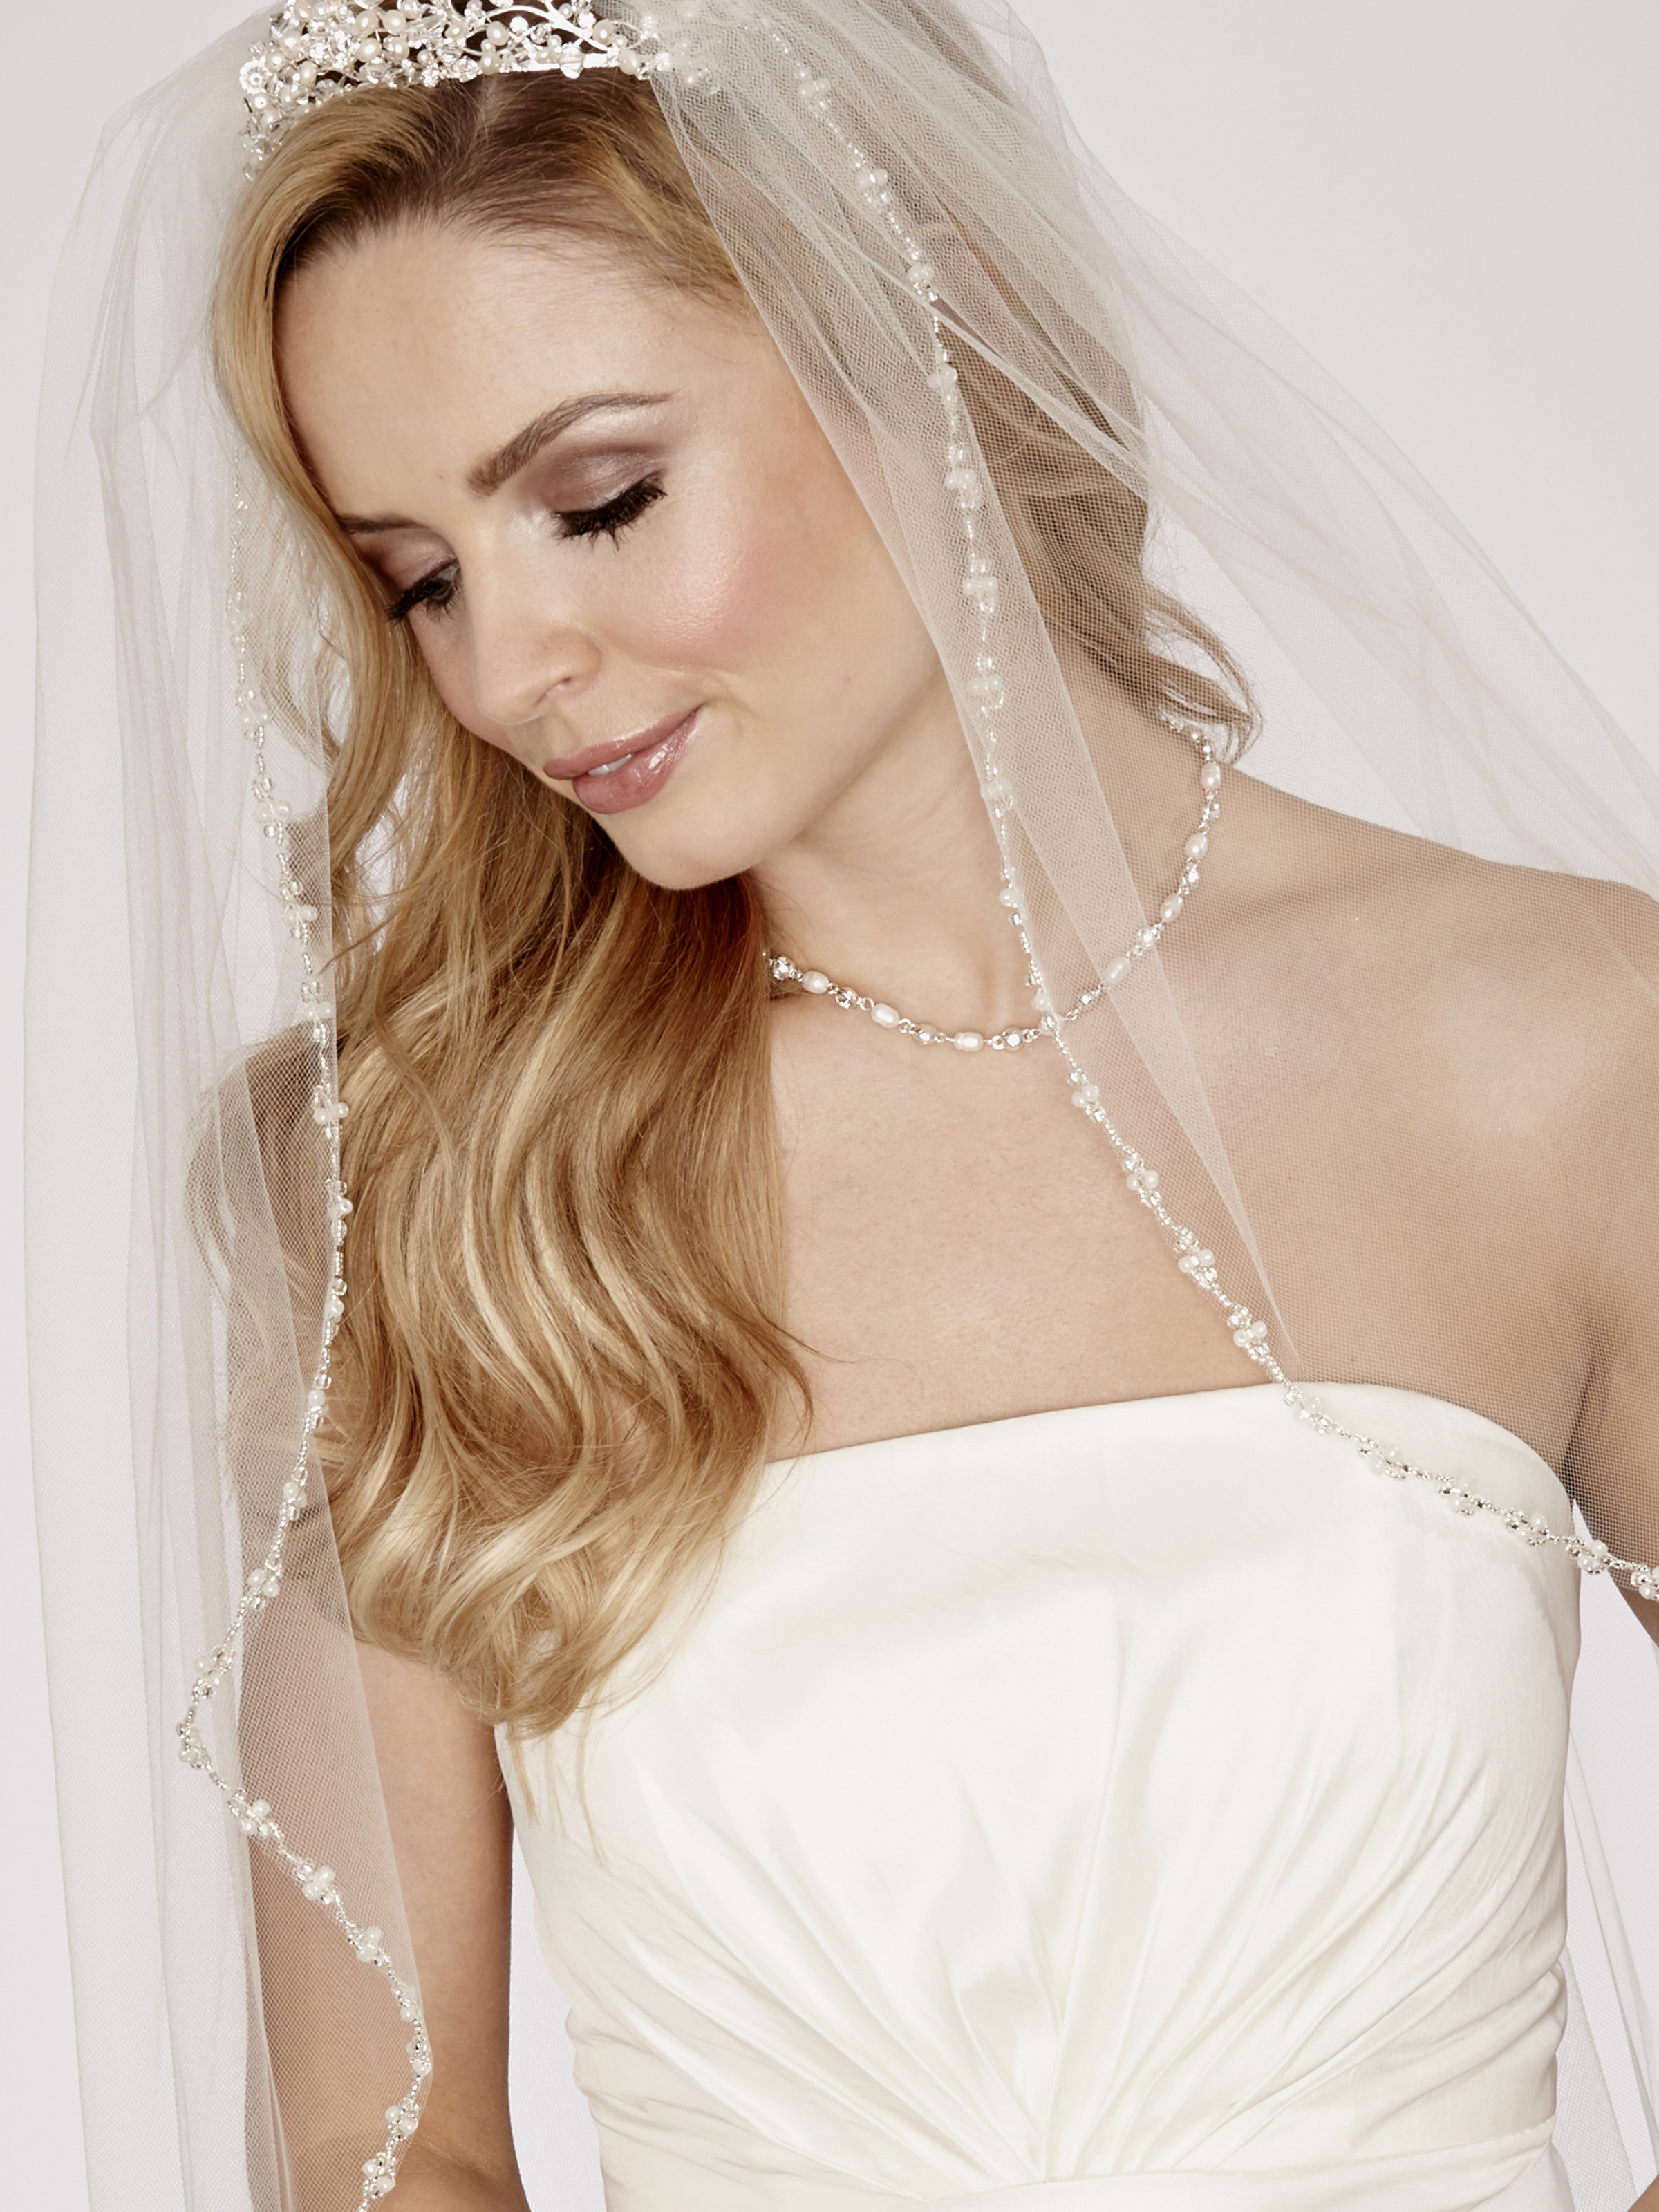 LA951 Single Tier Bridal Veil